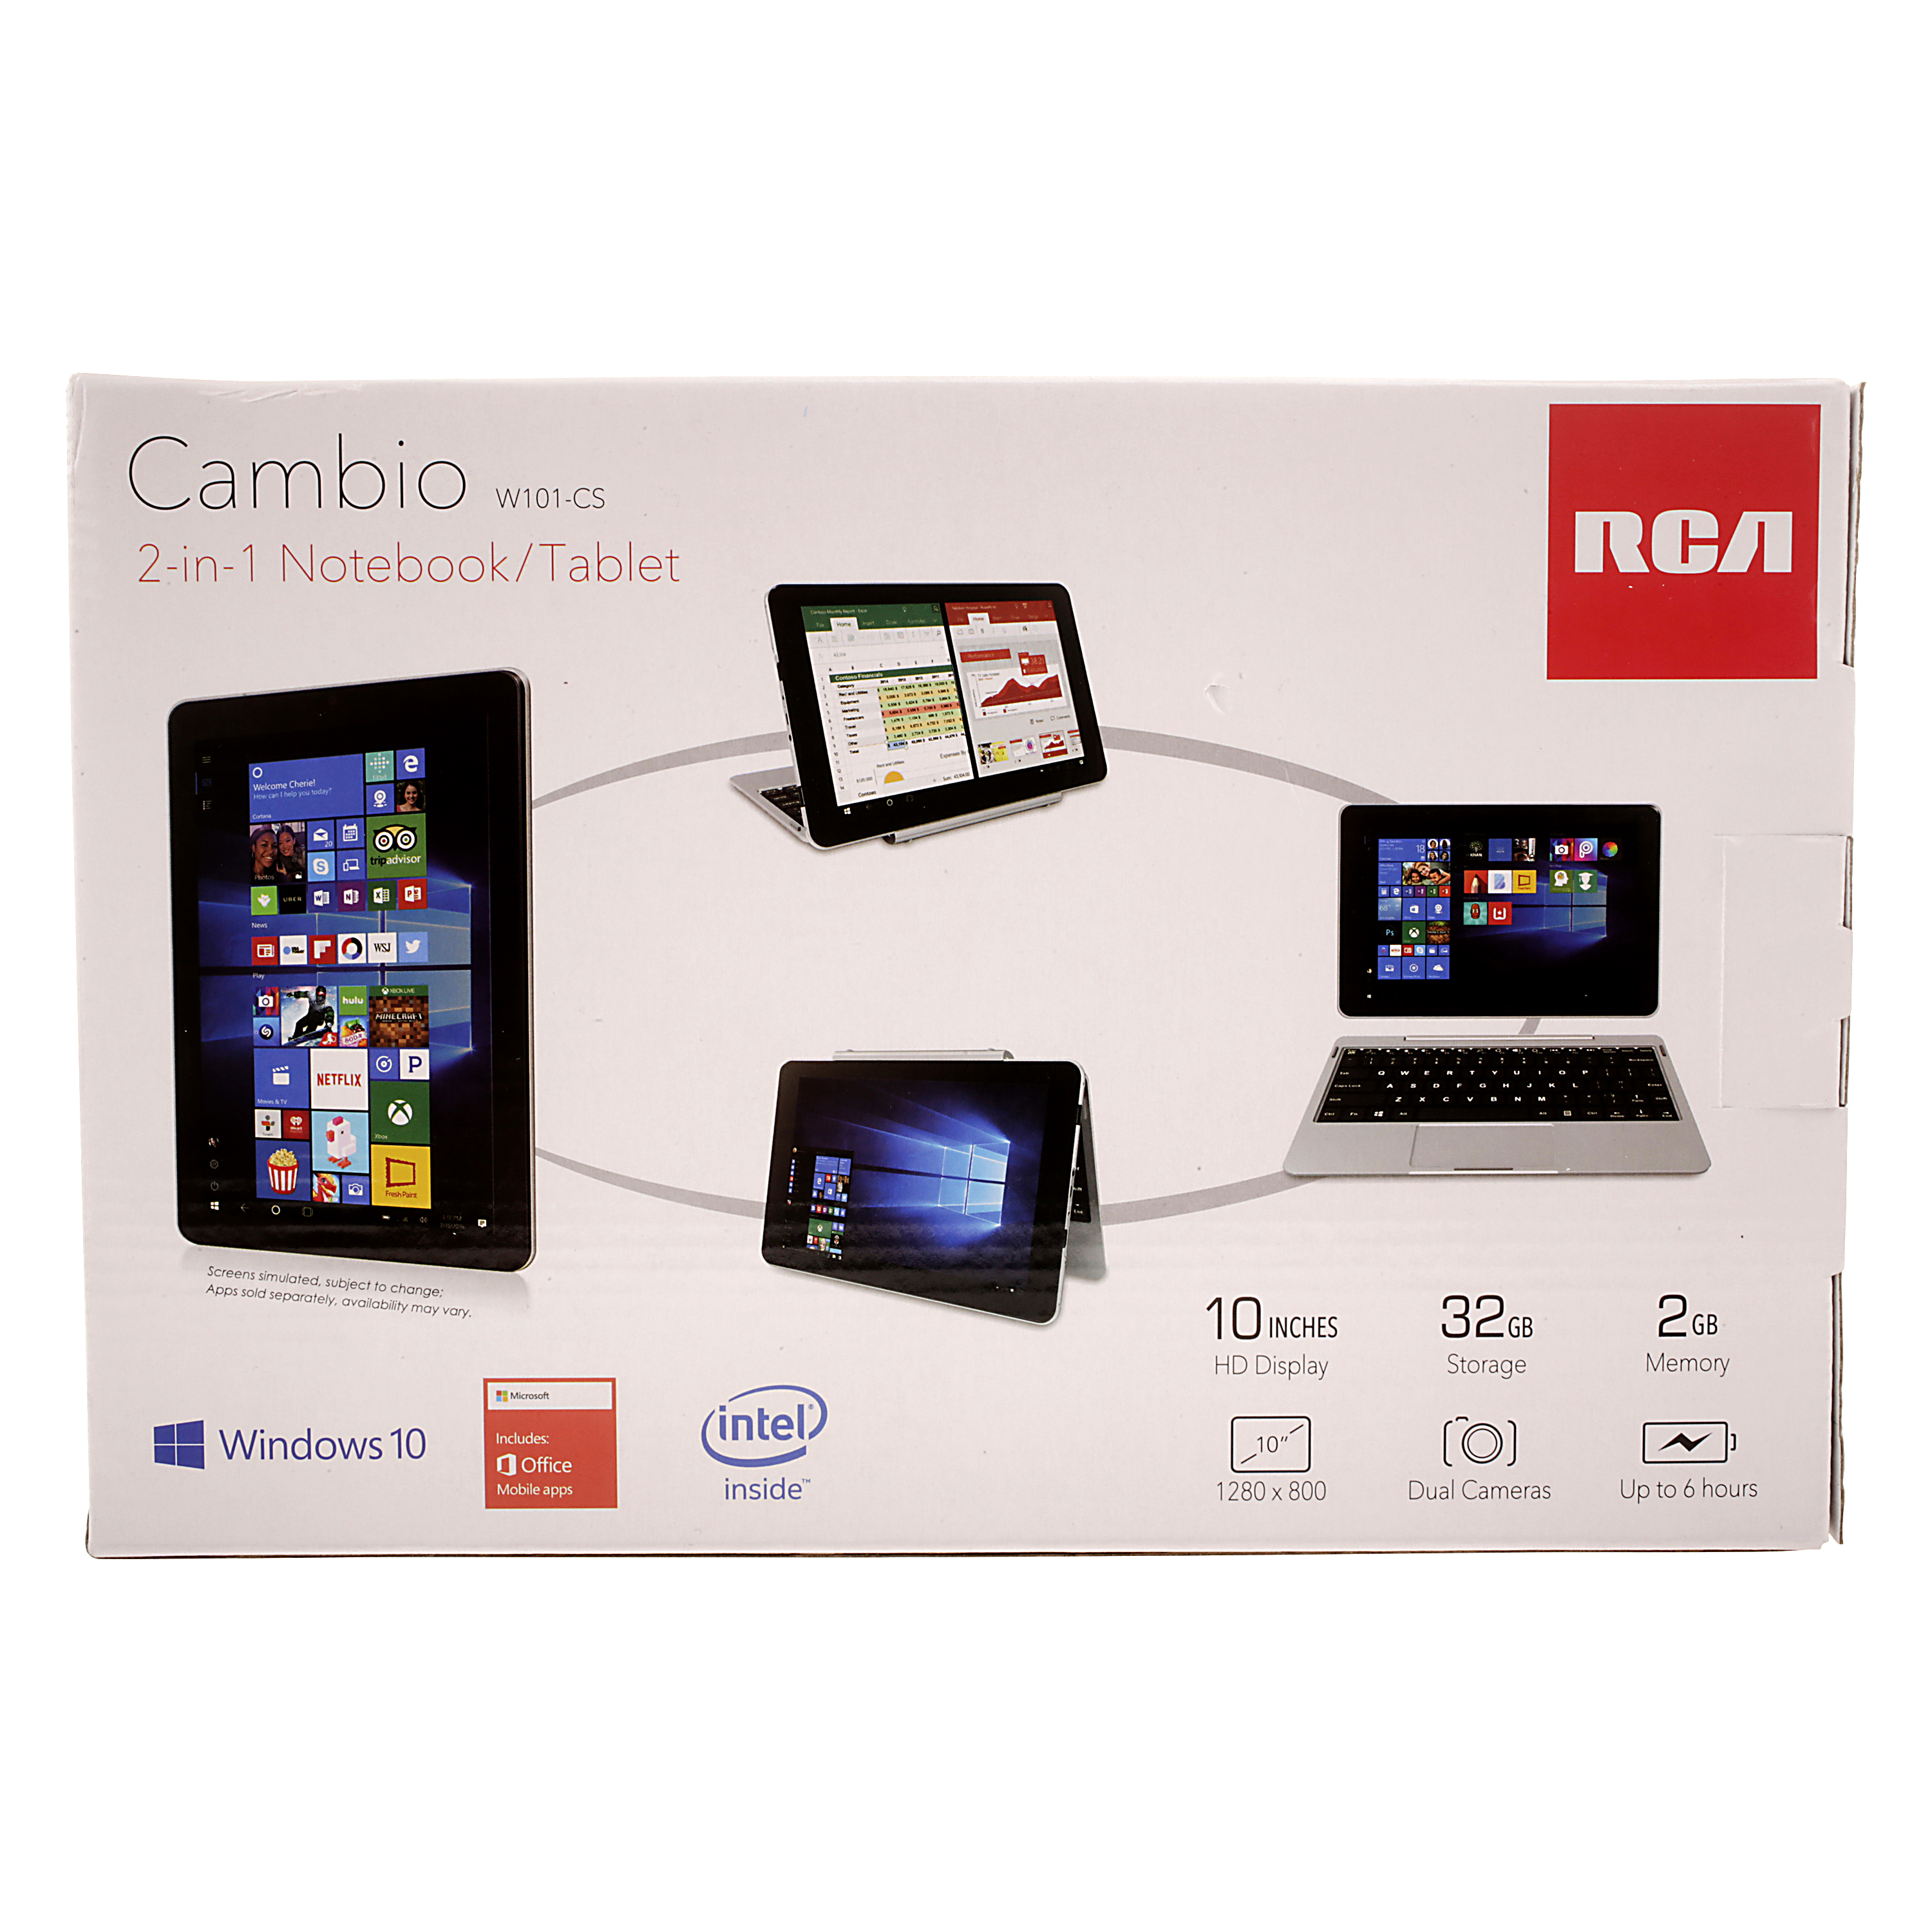 RCA Cambio 2-in-1 notebook/tablet